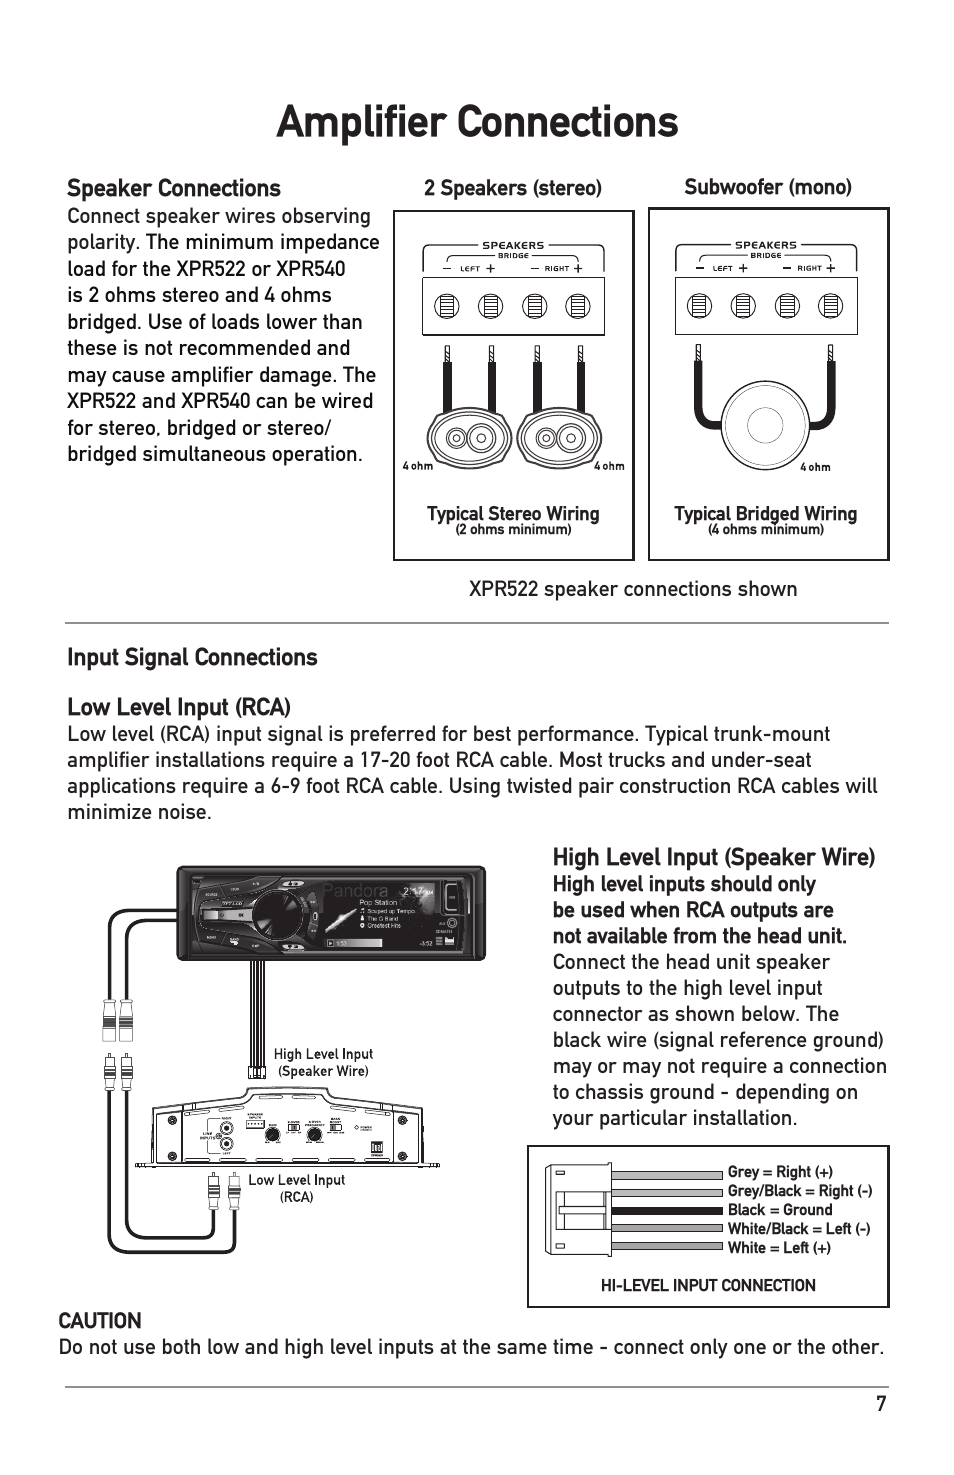 Amplifier connections, Speaker connections, Input signal connections low  level input (rca)   Dual Electronics XPR540 User Manual   Page 7 / 12manualsdir.com